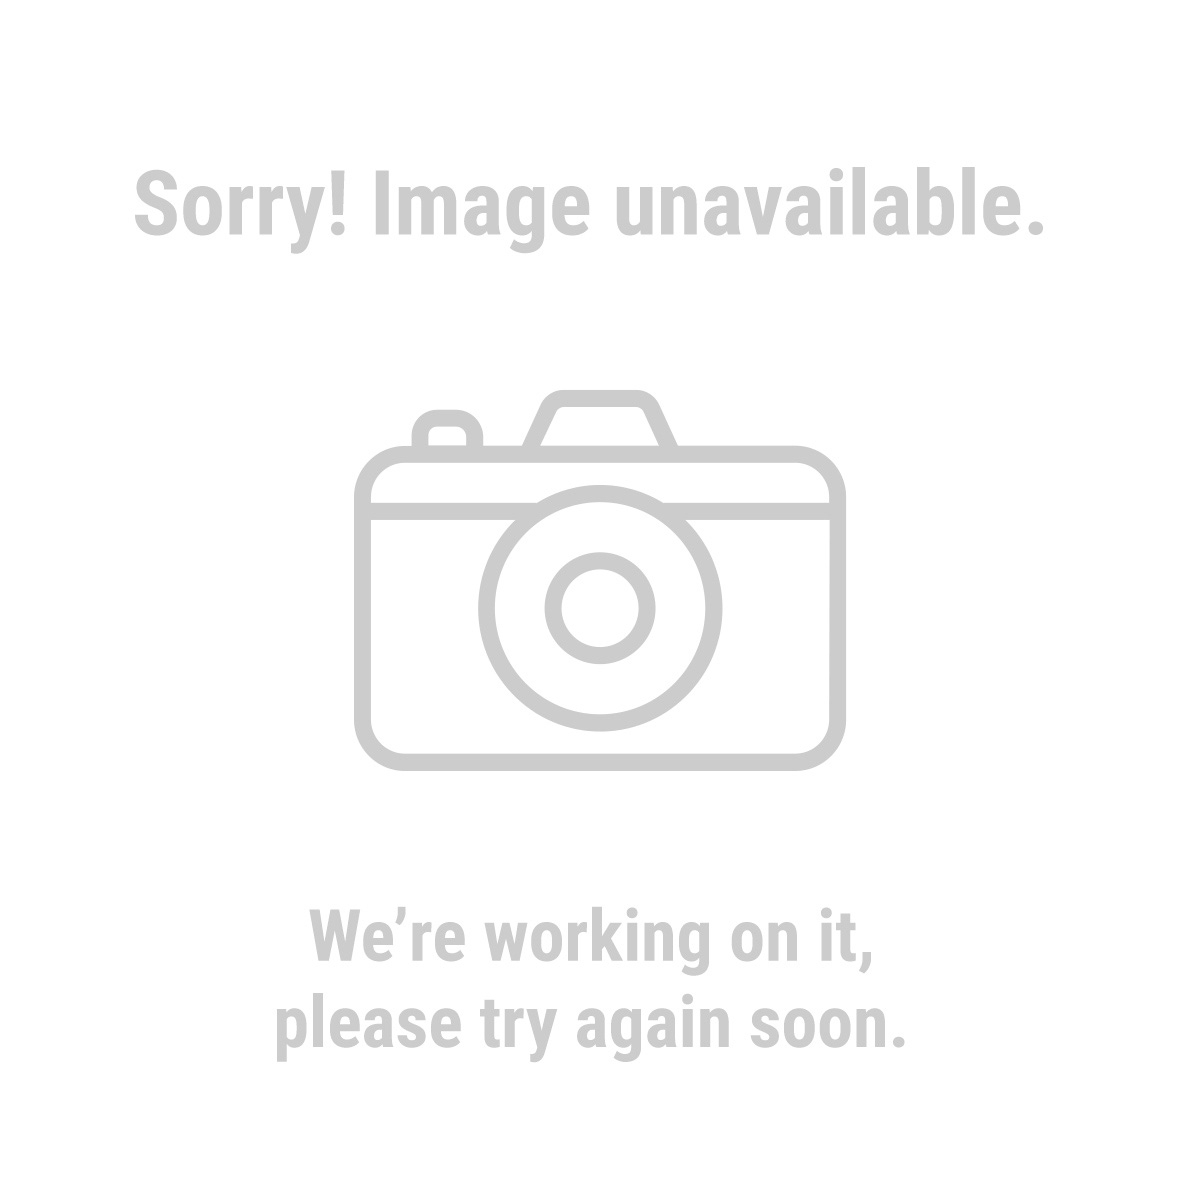 U.S. General 62587 24 In. x 36 In. Two Shelf Steel Service Cart